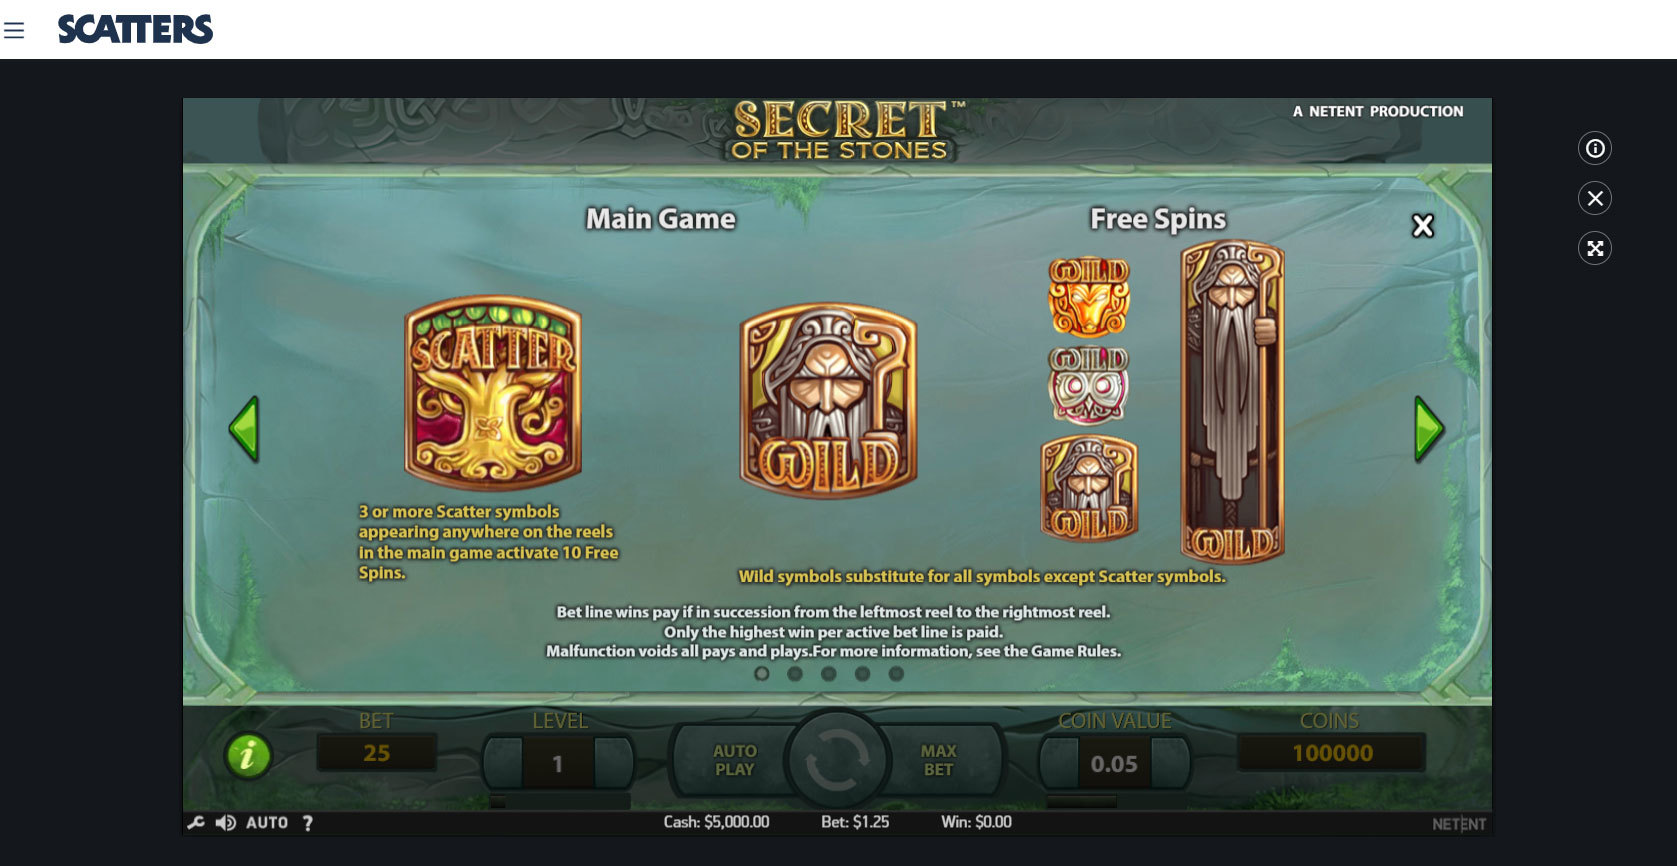 Play Secrets of the Stones by Netent for Free or Real Money at Scatters Casino